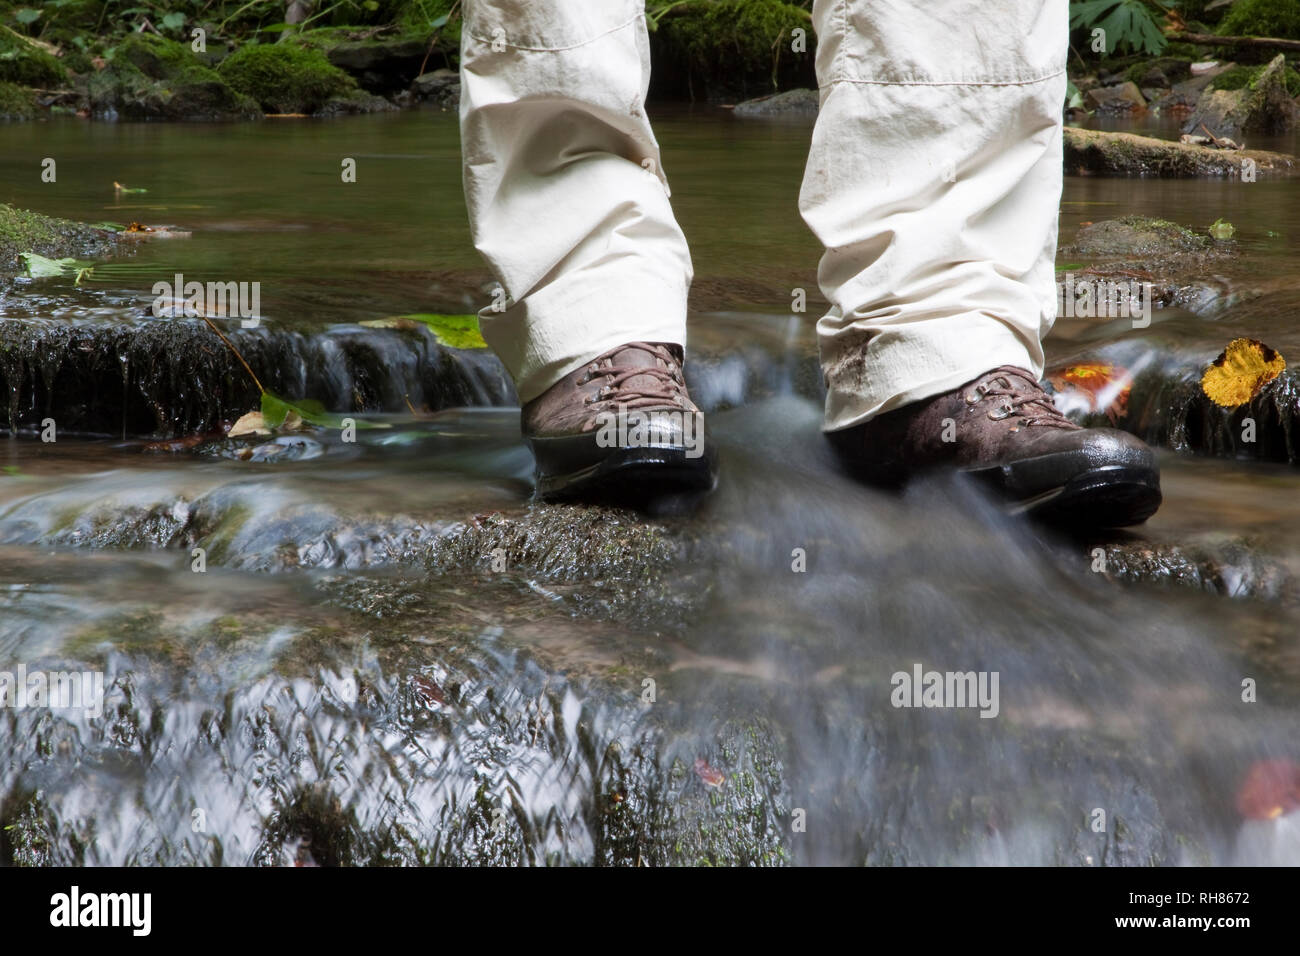 Hiker in Boots Standing in a River - Stock Image